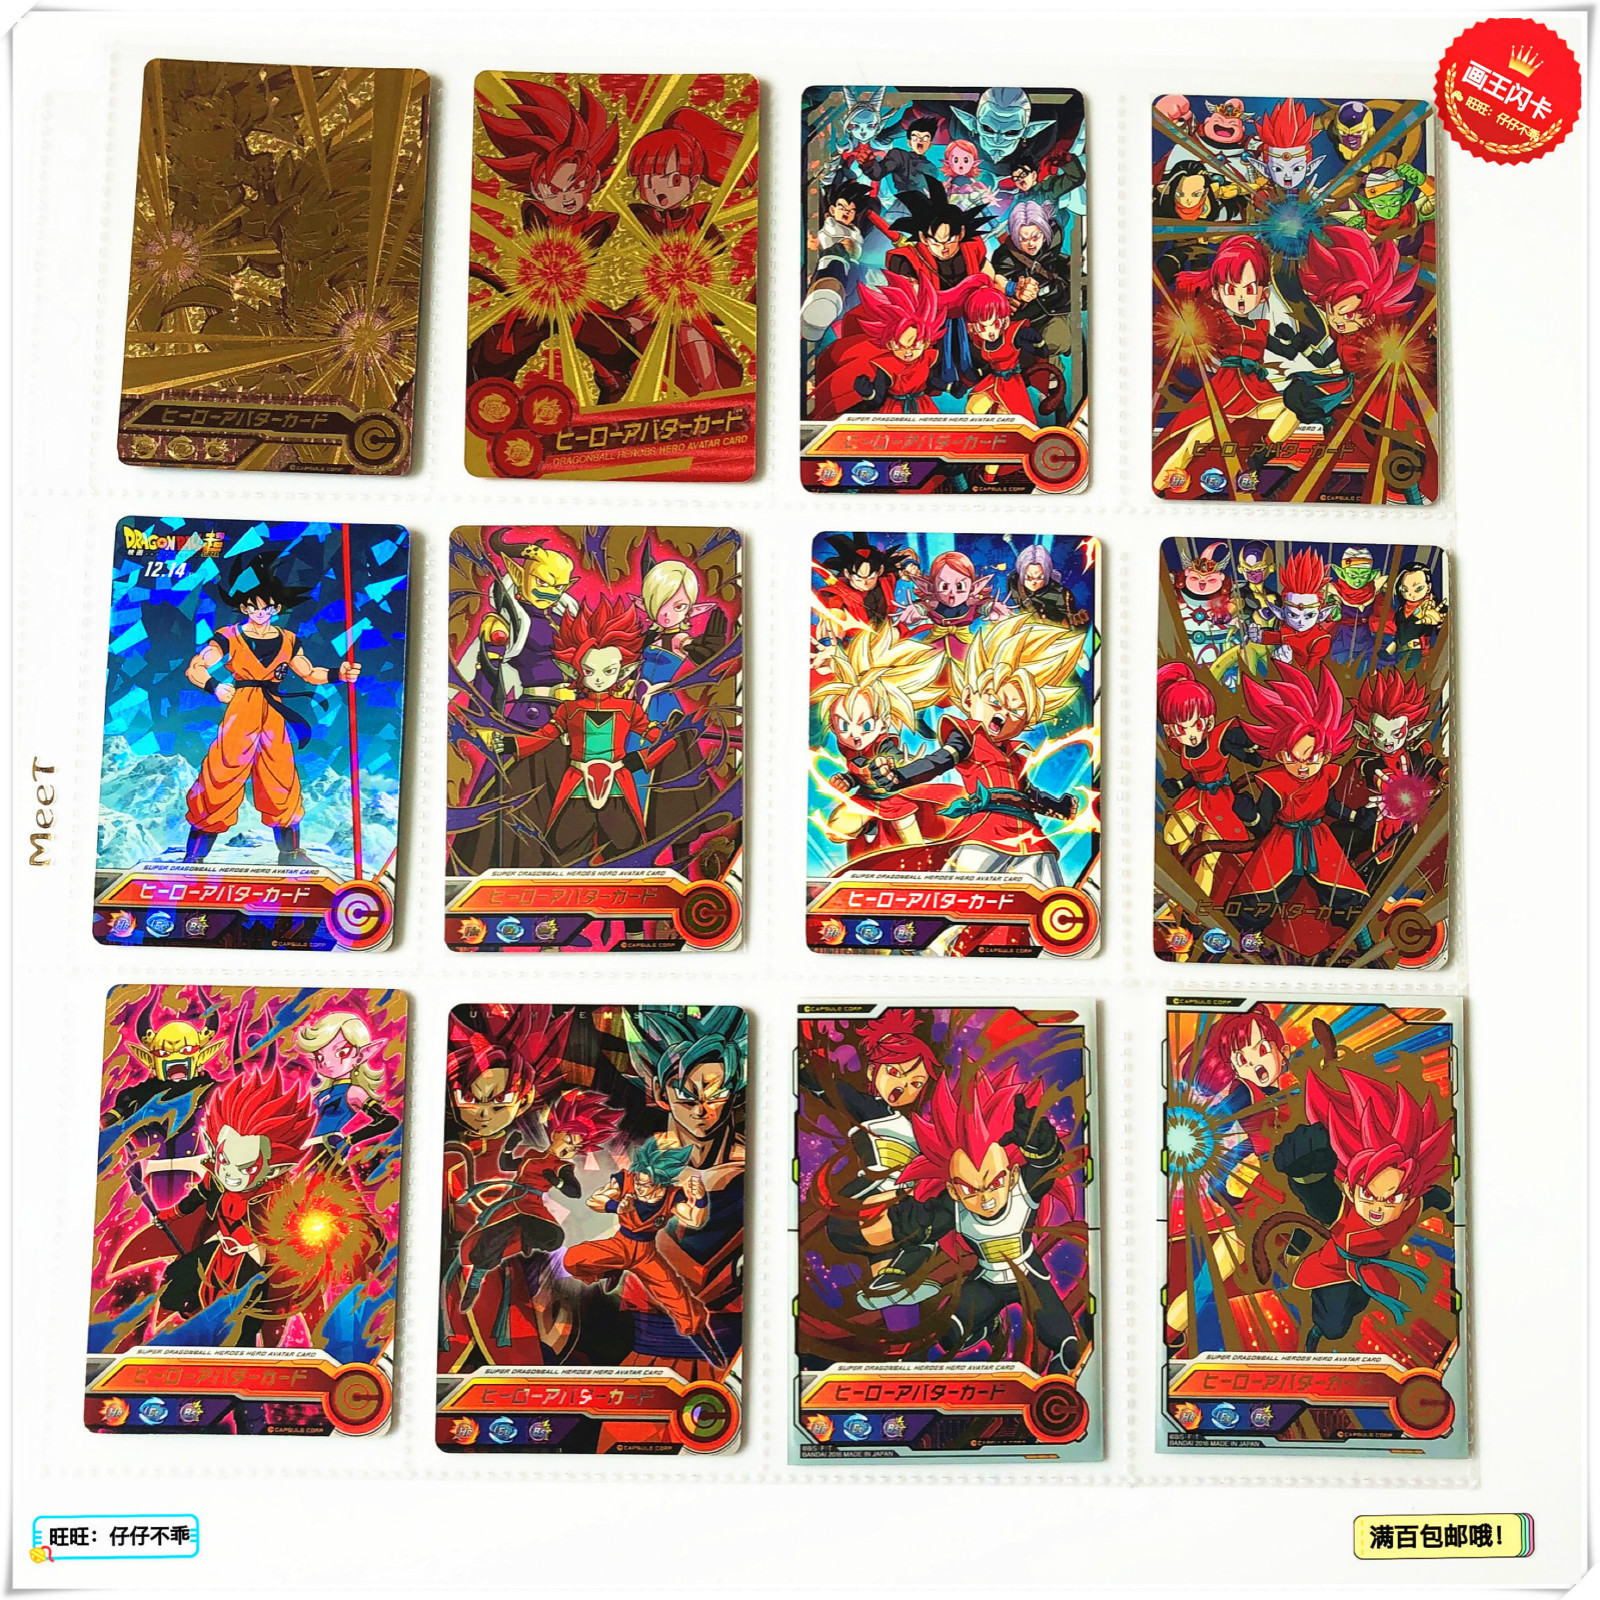 Japan Original Dragon Ball Hero Limited God God Super Saiyan Goku Toys Hobbies Collectibles Game Collection Anime Cards